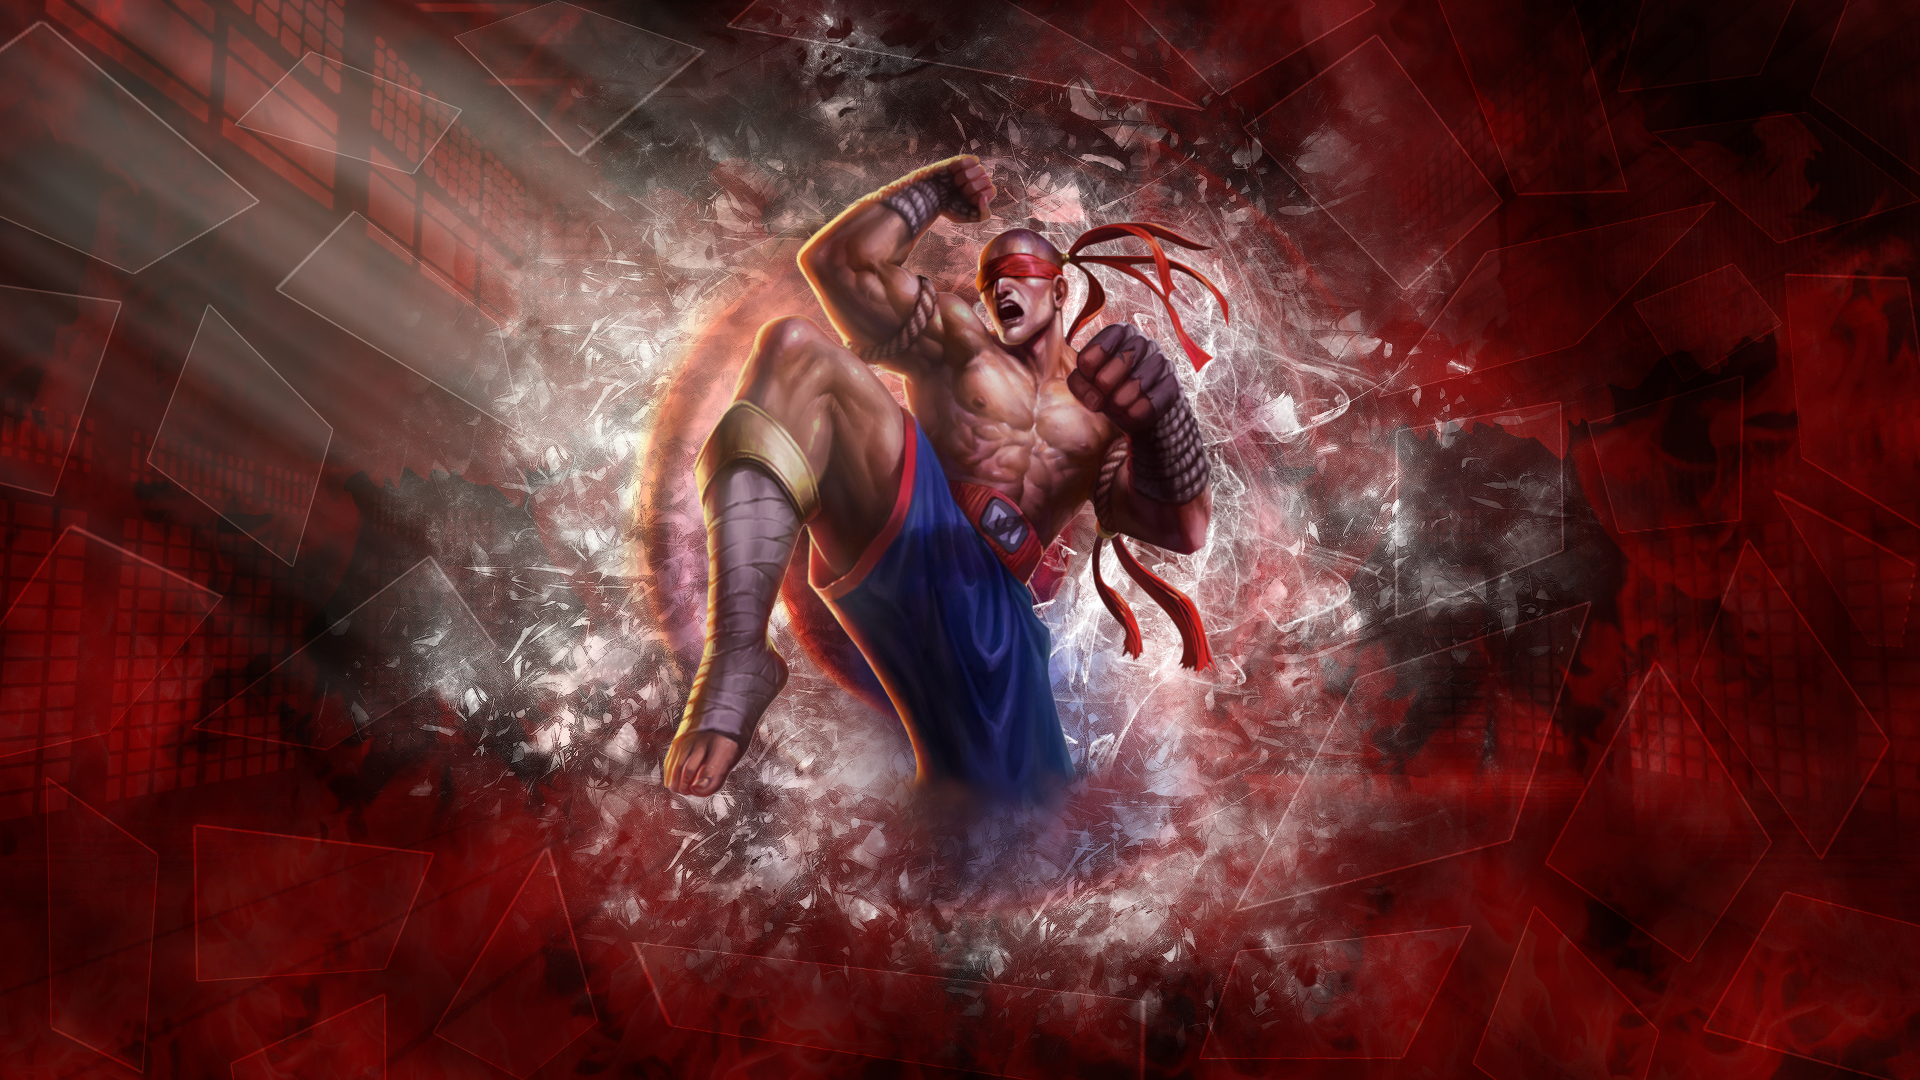 Muay Thai Lee Sin Wallpaper 1920x1080 By Berky10 On Deviantart